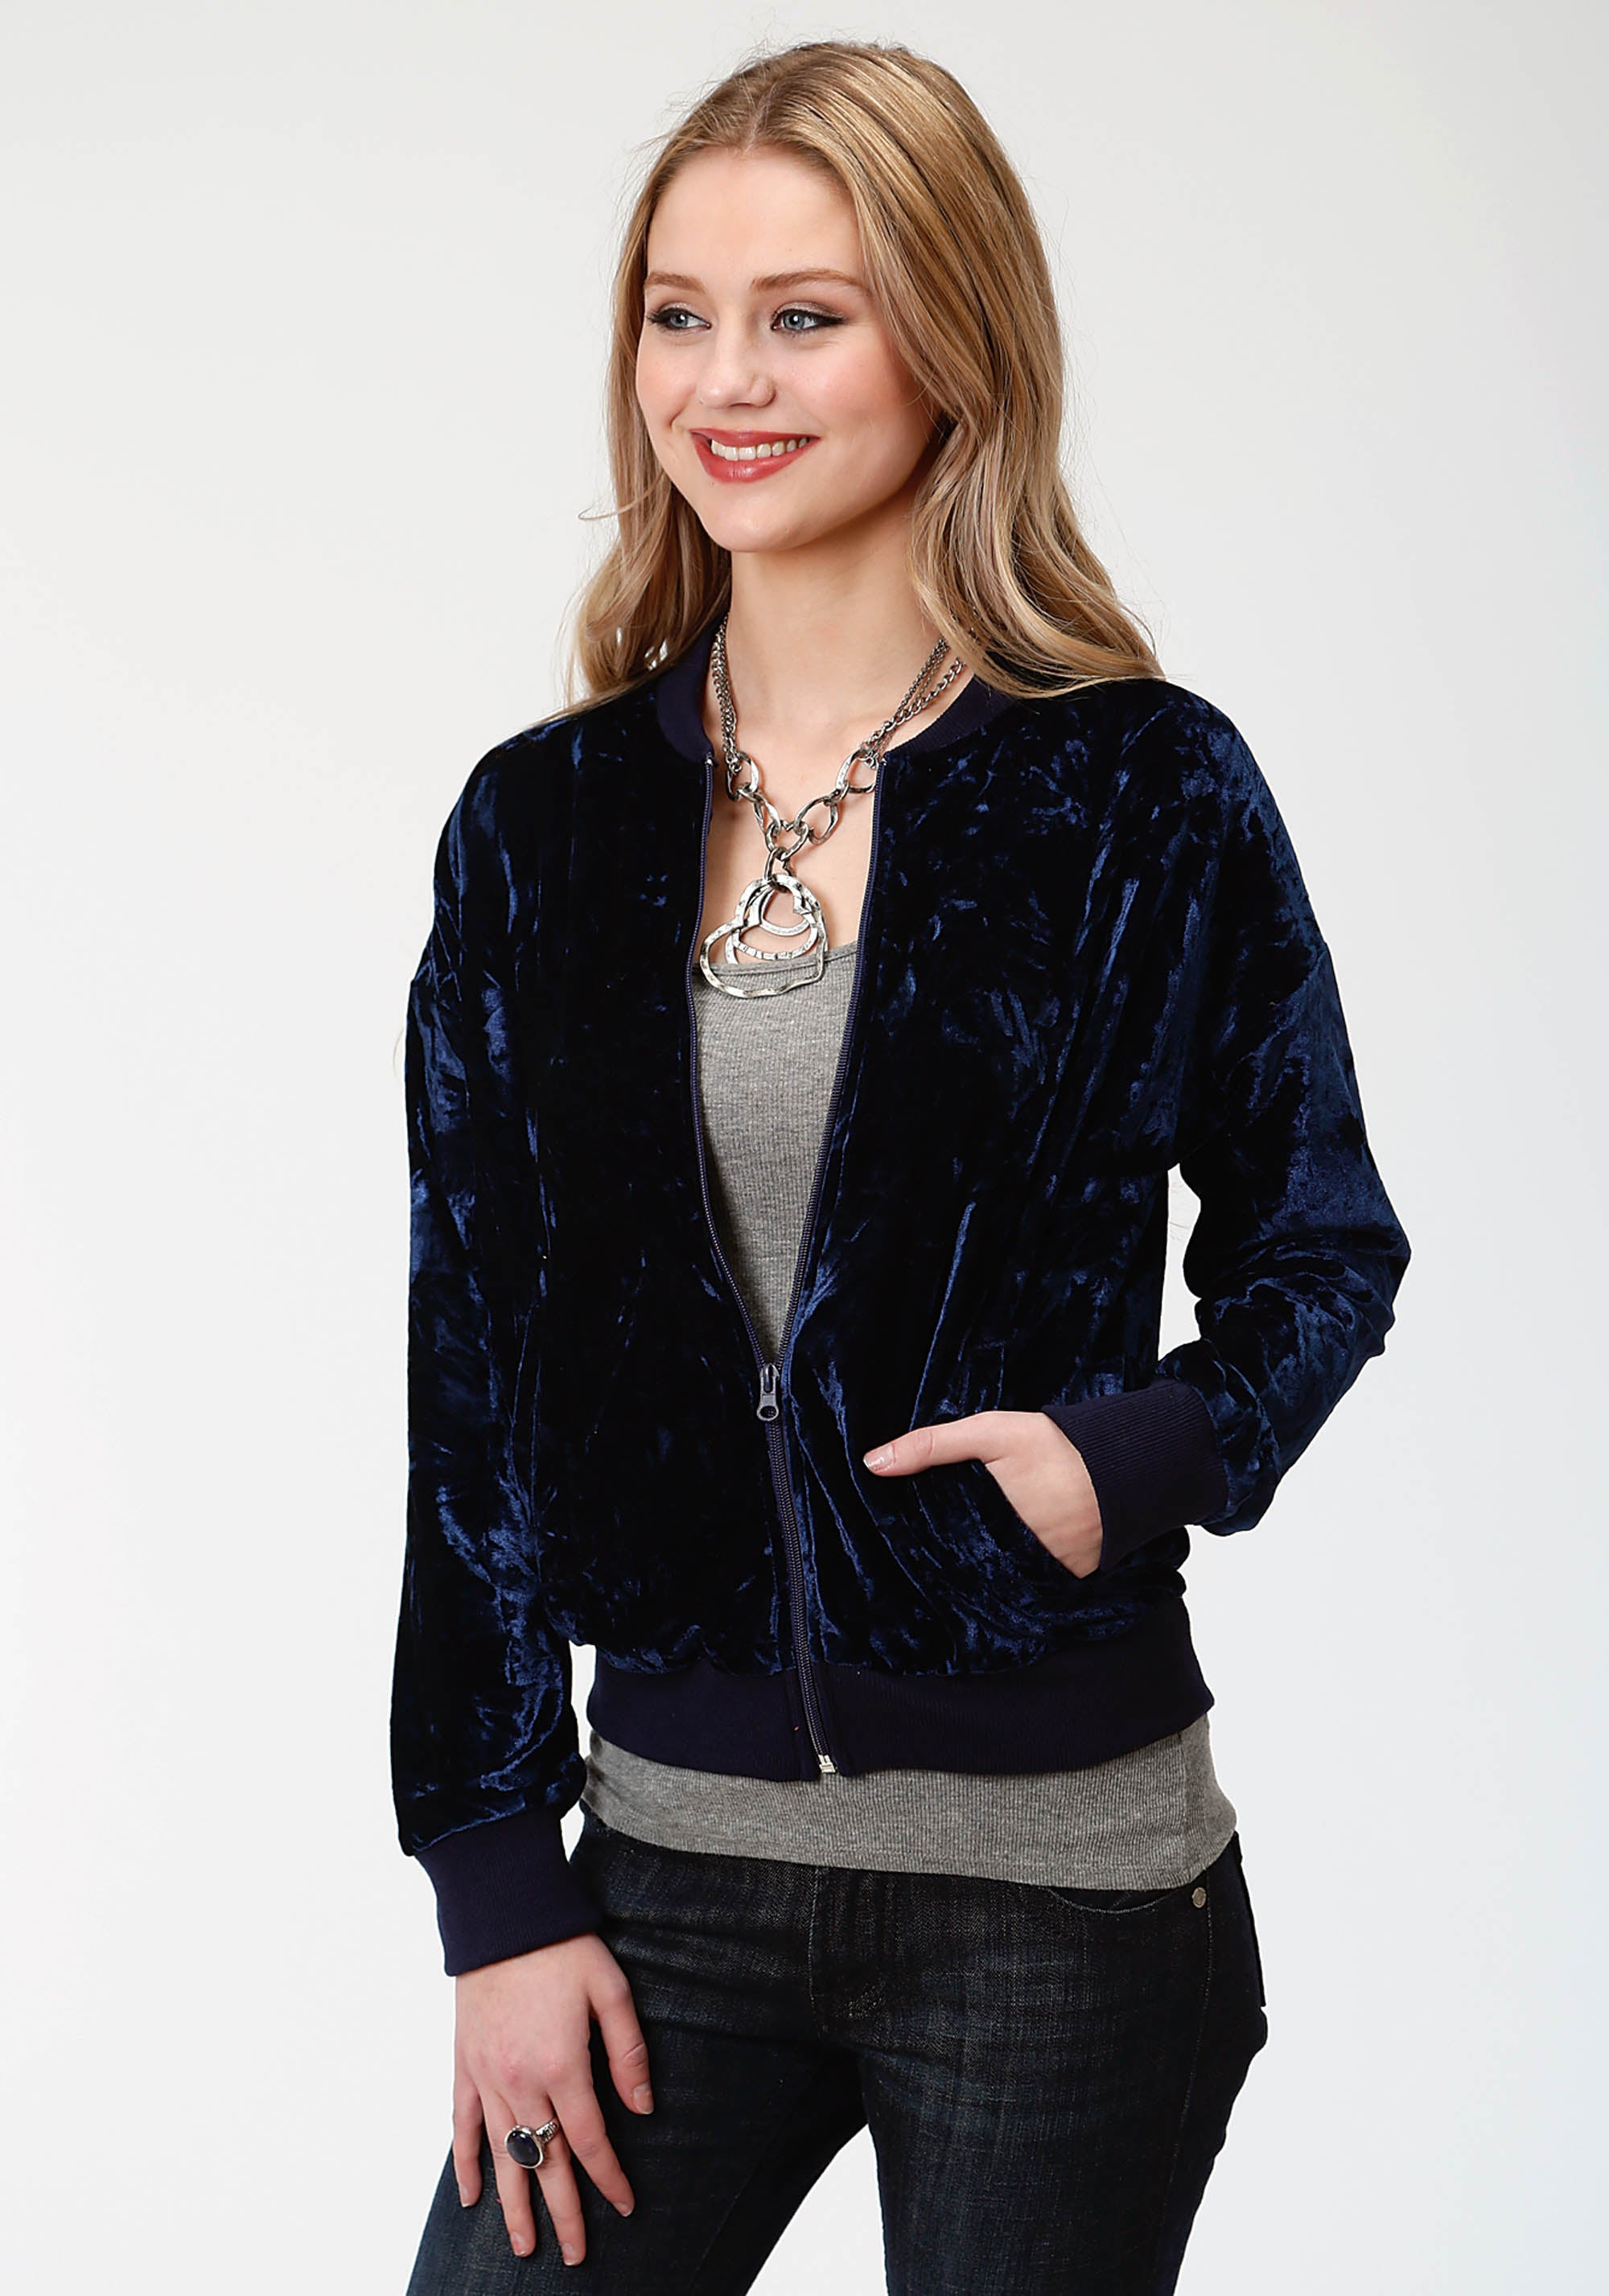 ROPER WOMENS BLUE 3559 CRUSHED VELVET BOMBER STYLE JCKT FIVE STAR- WINTER I JACKET